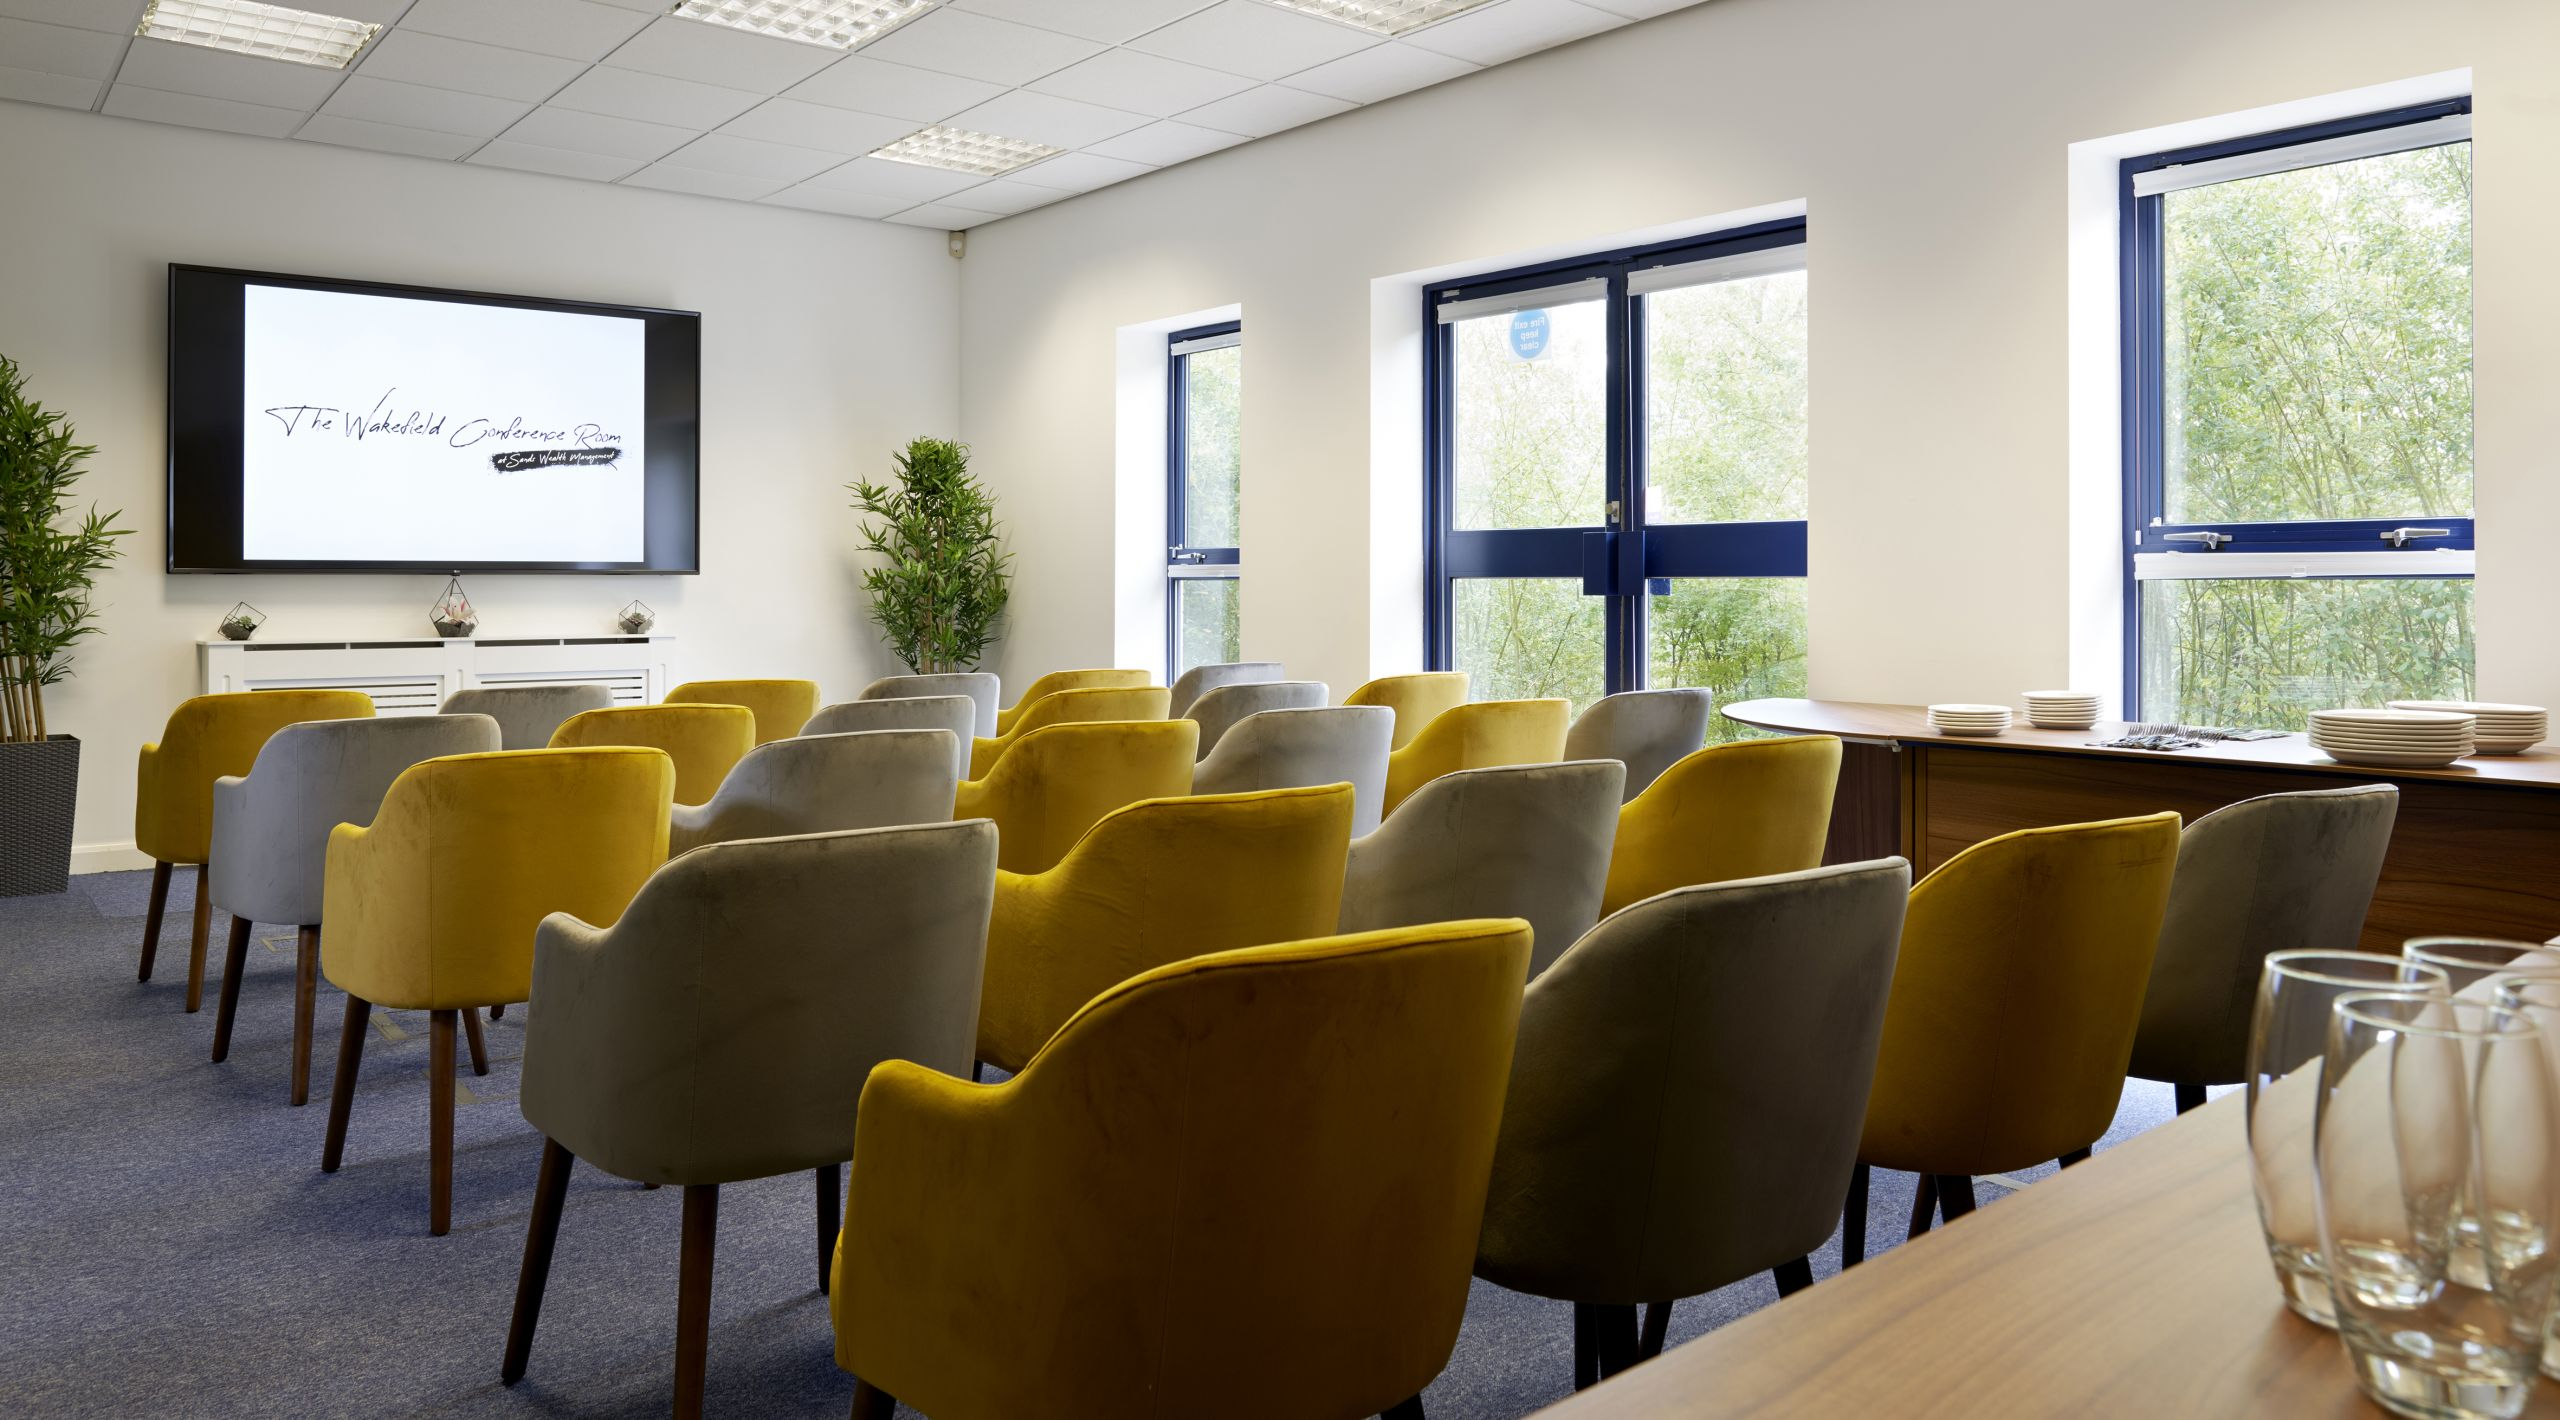 The Wakefield Conference Room ticks all the boxes – Comfortable and light, configurable layouts, first class Wi-Fi and technological support as well as a self-contained lobby, kitchen and toilets.